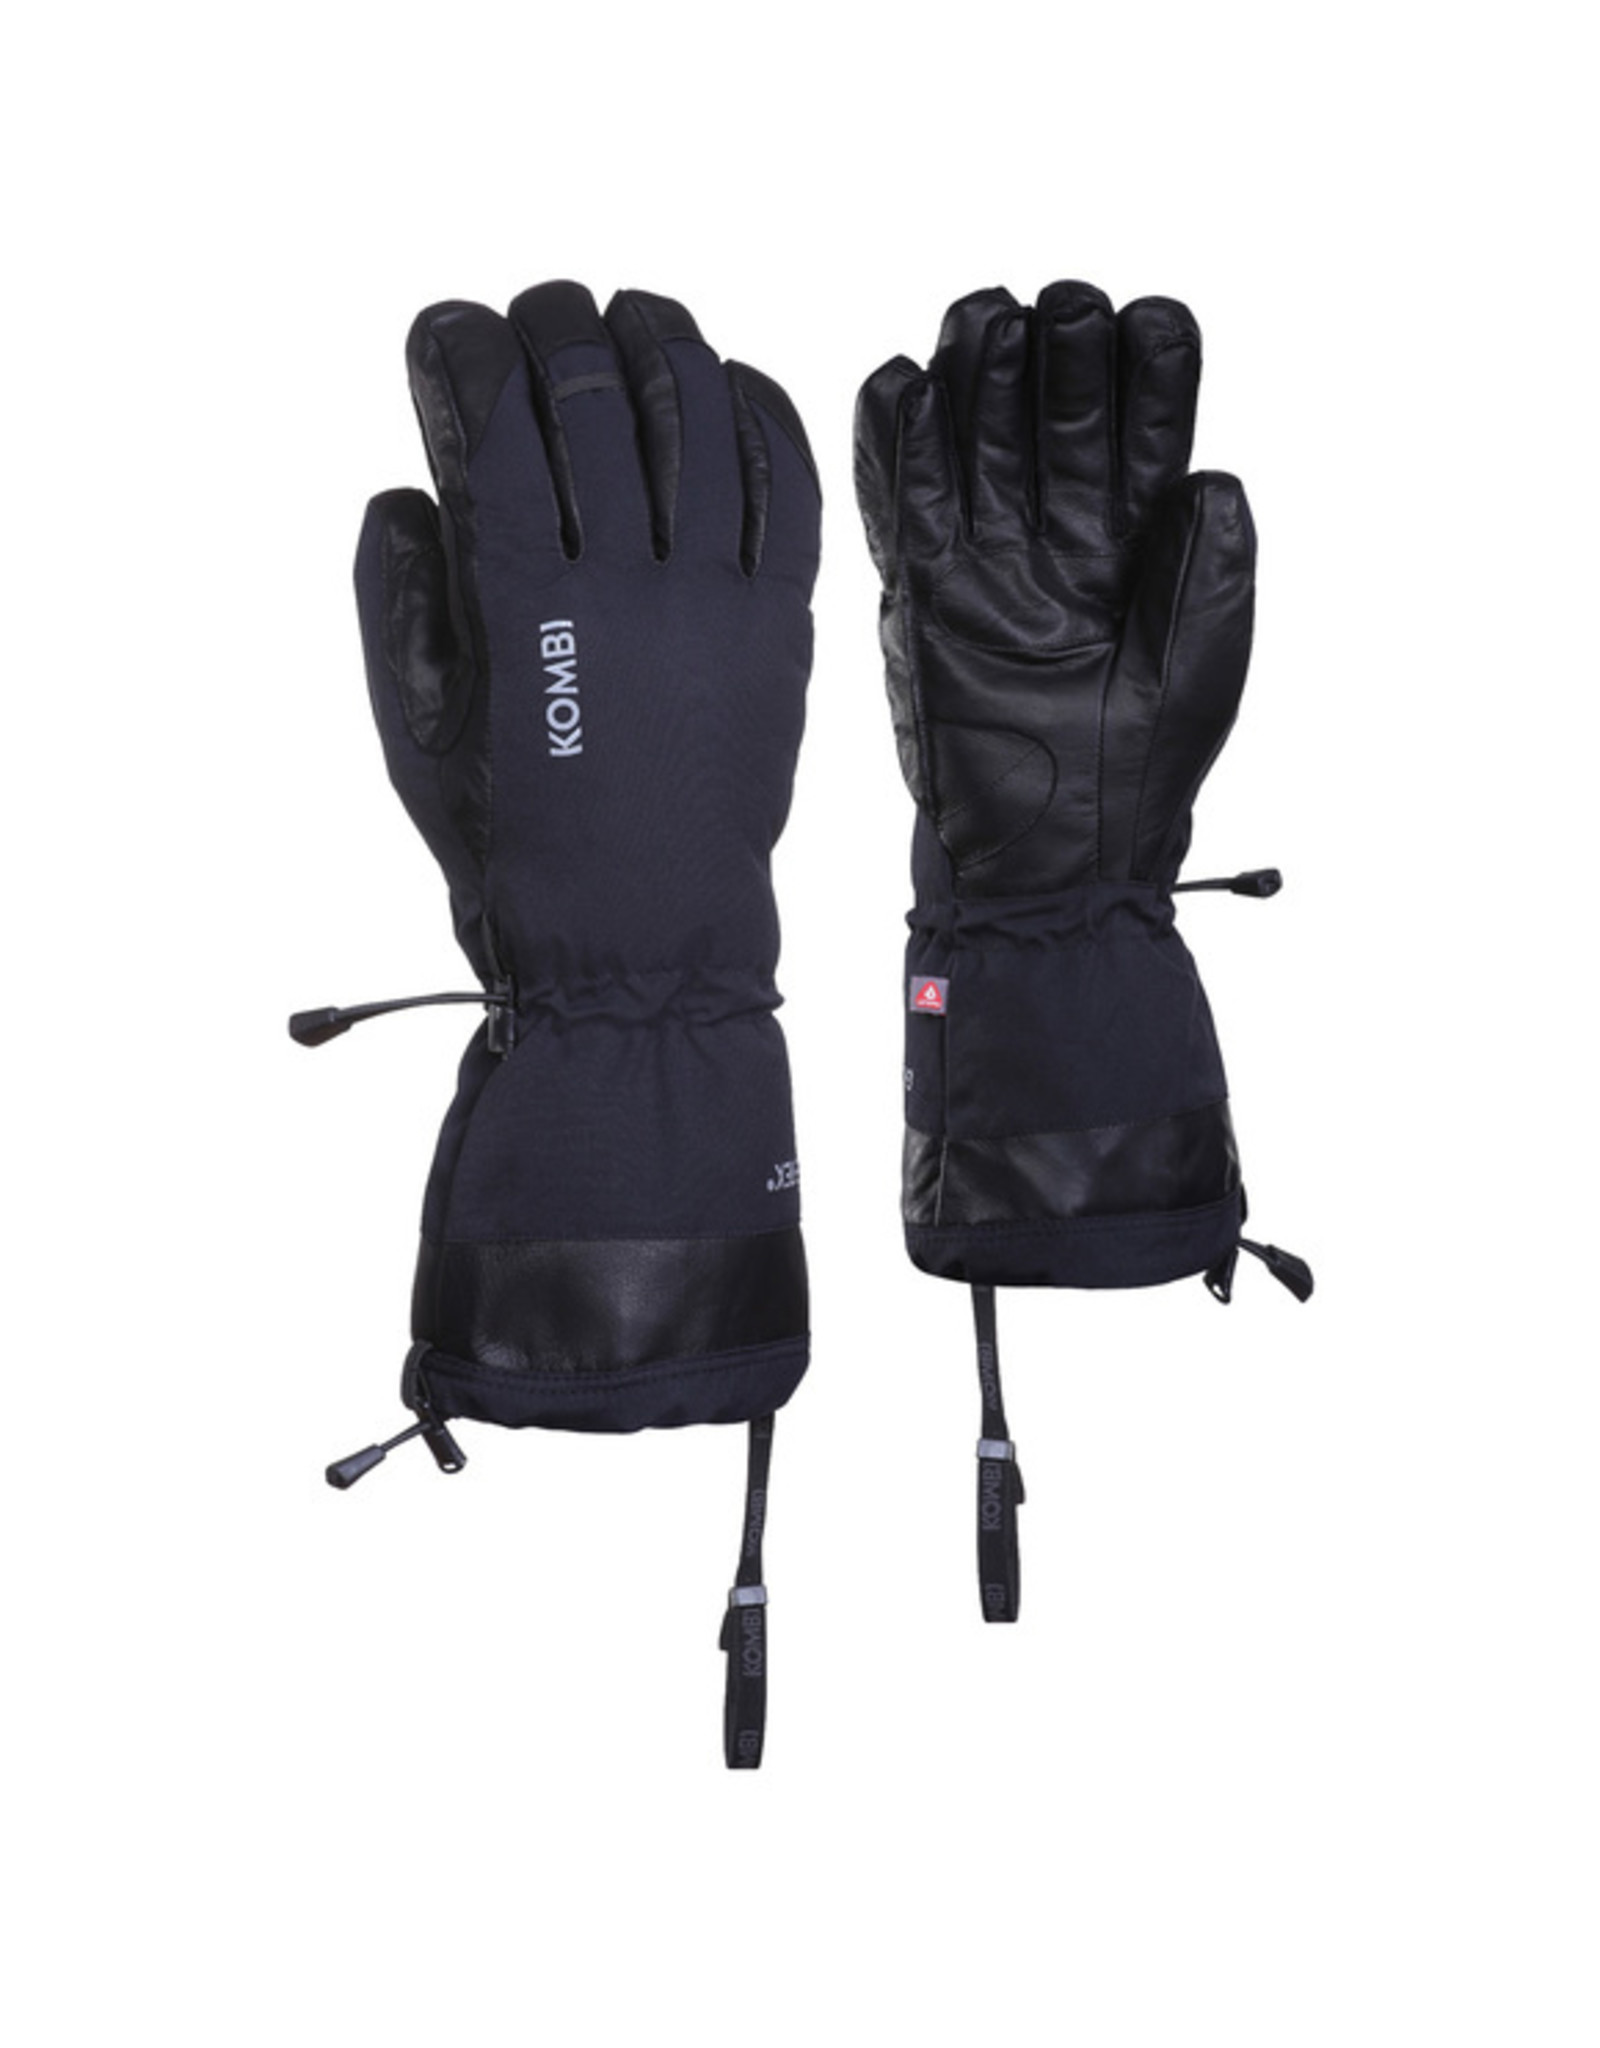 Kombi Kombi The Adventurer Men's Glove